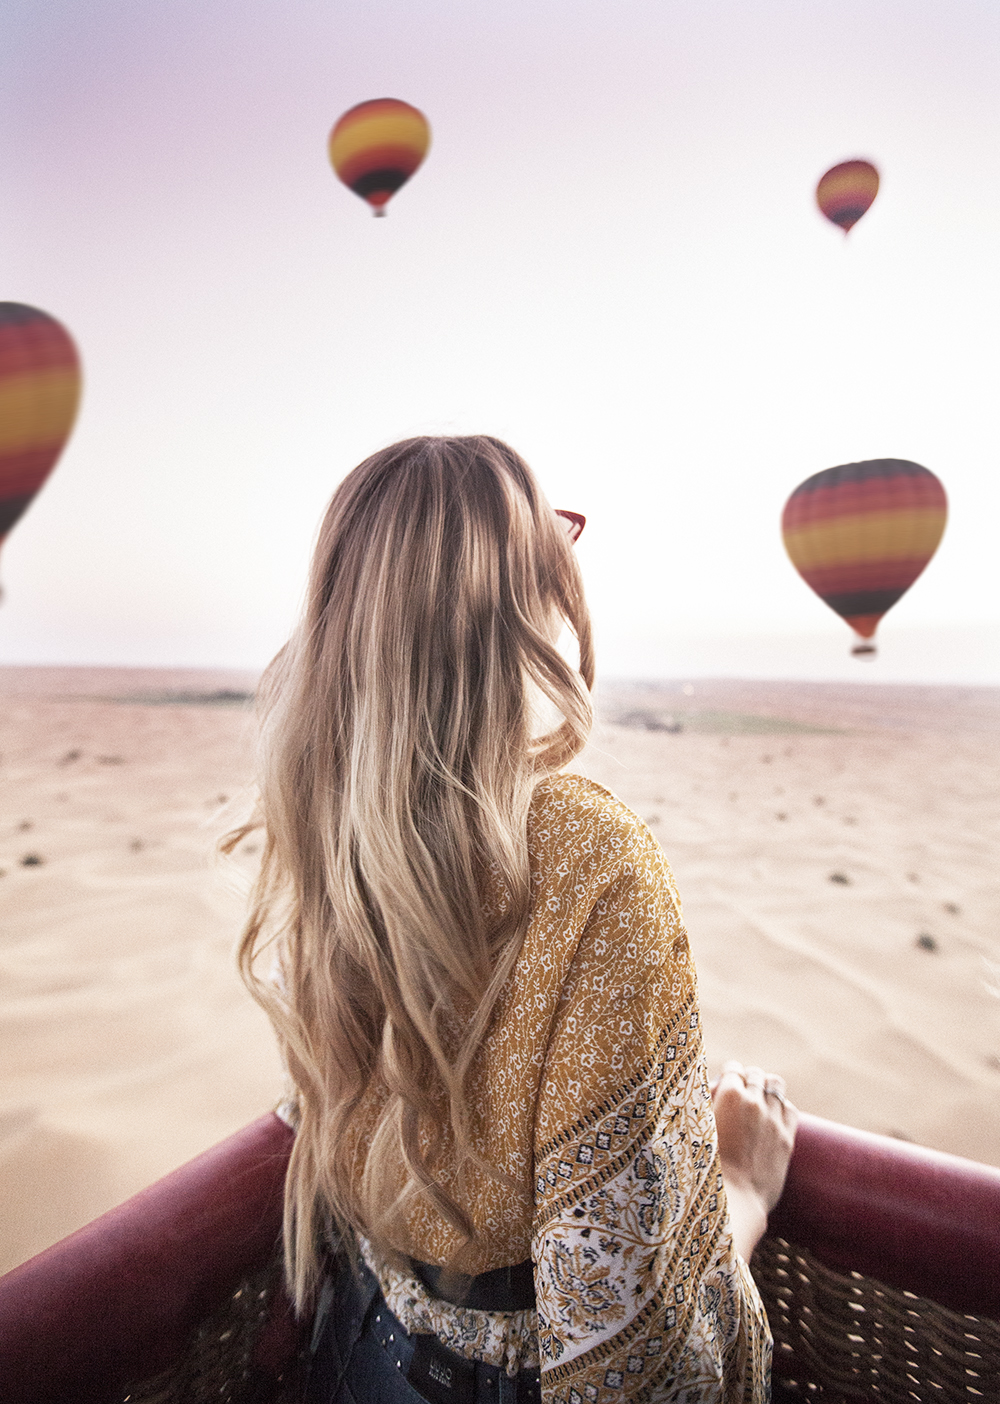 hot air ballooning in the desert